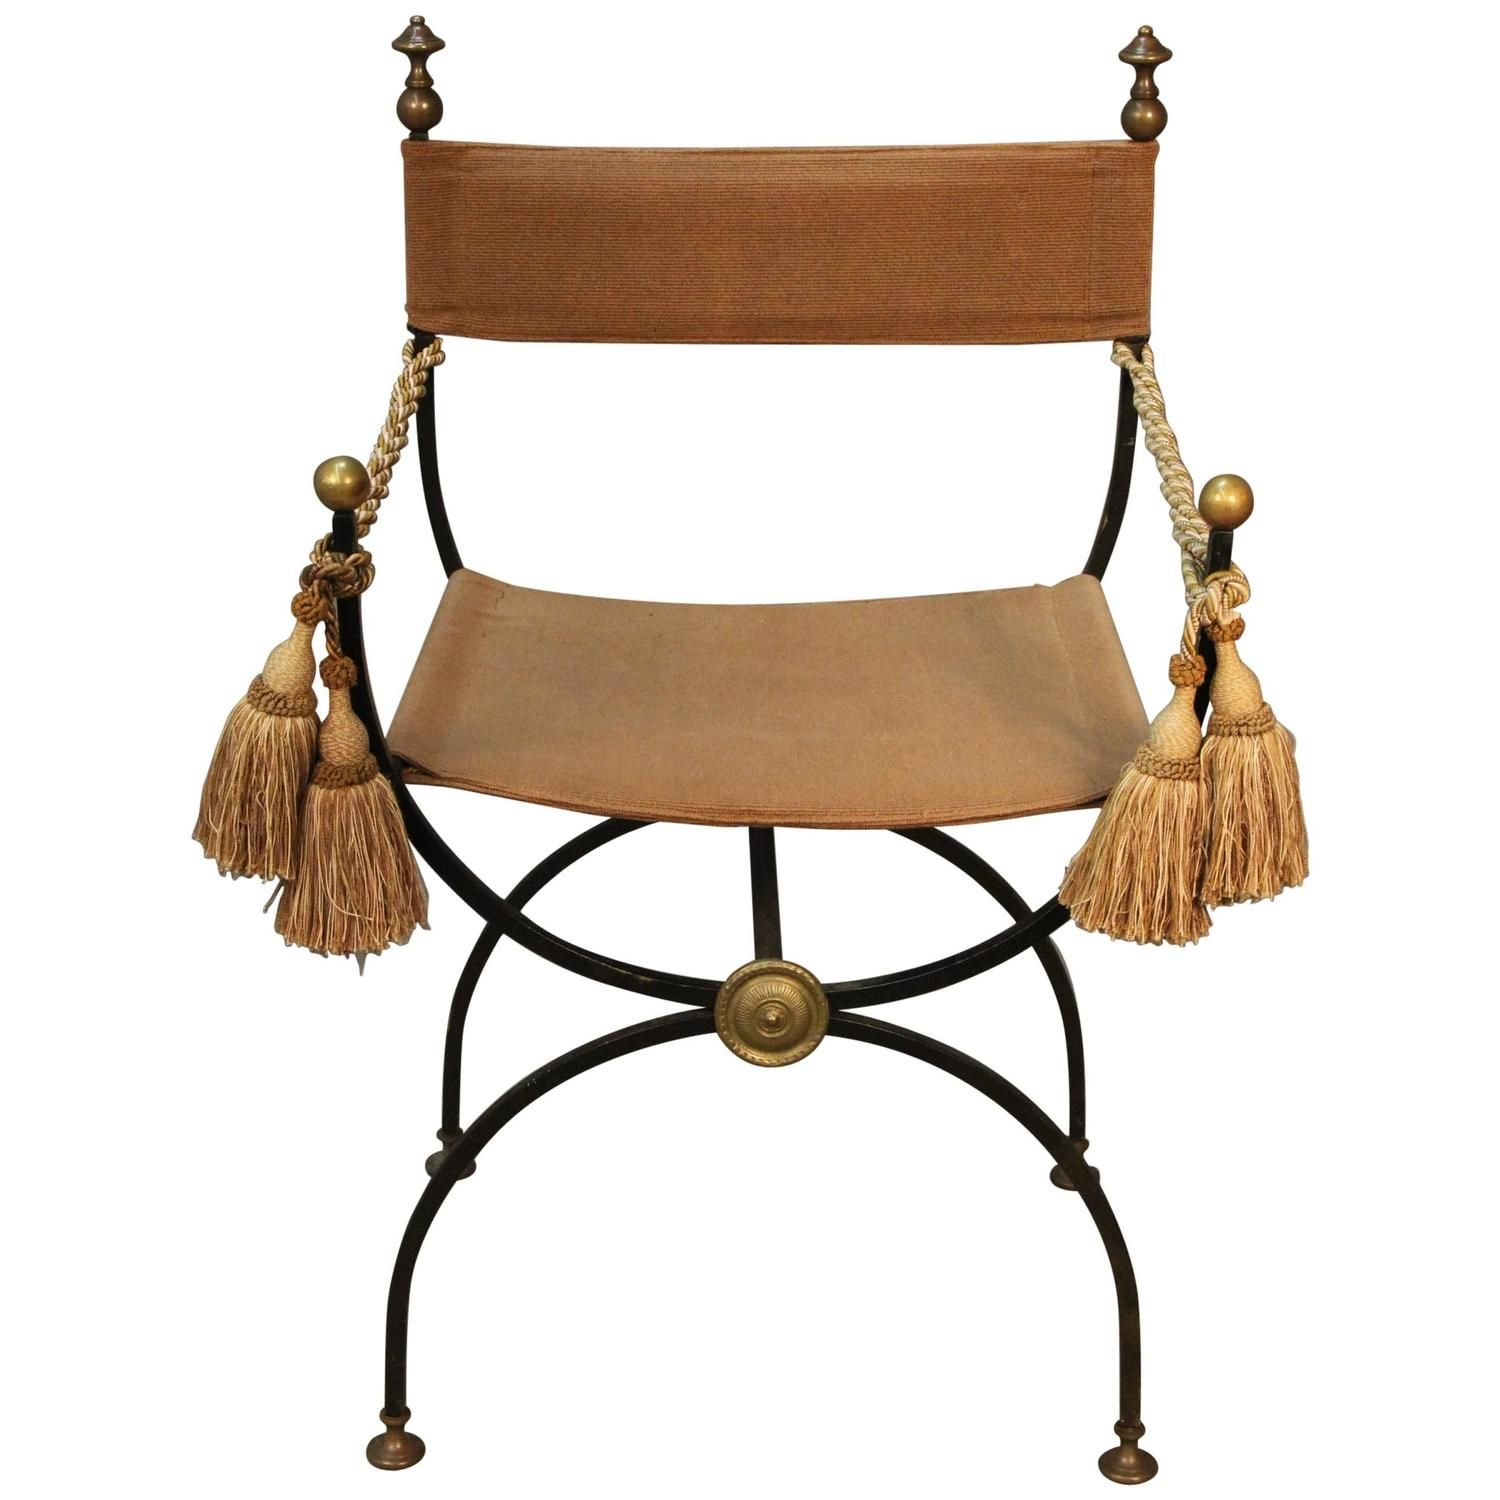 Modern savonarola chair - 950 Savonarola Chair Iron With Brass Finials From A Unique Collection Of Antique And